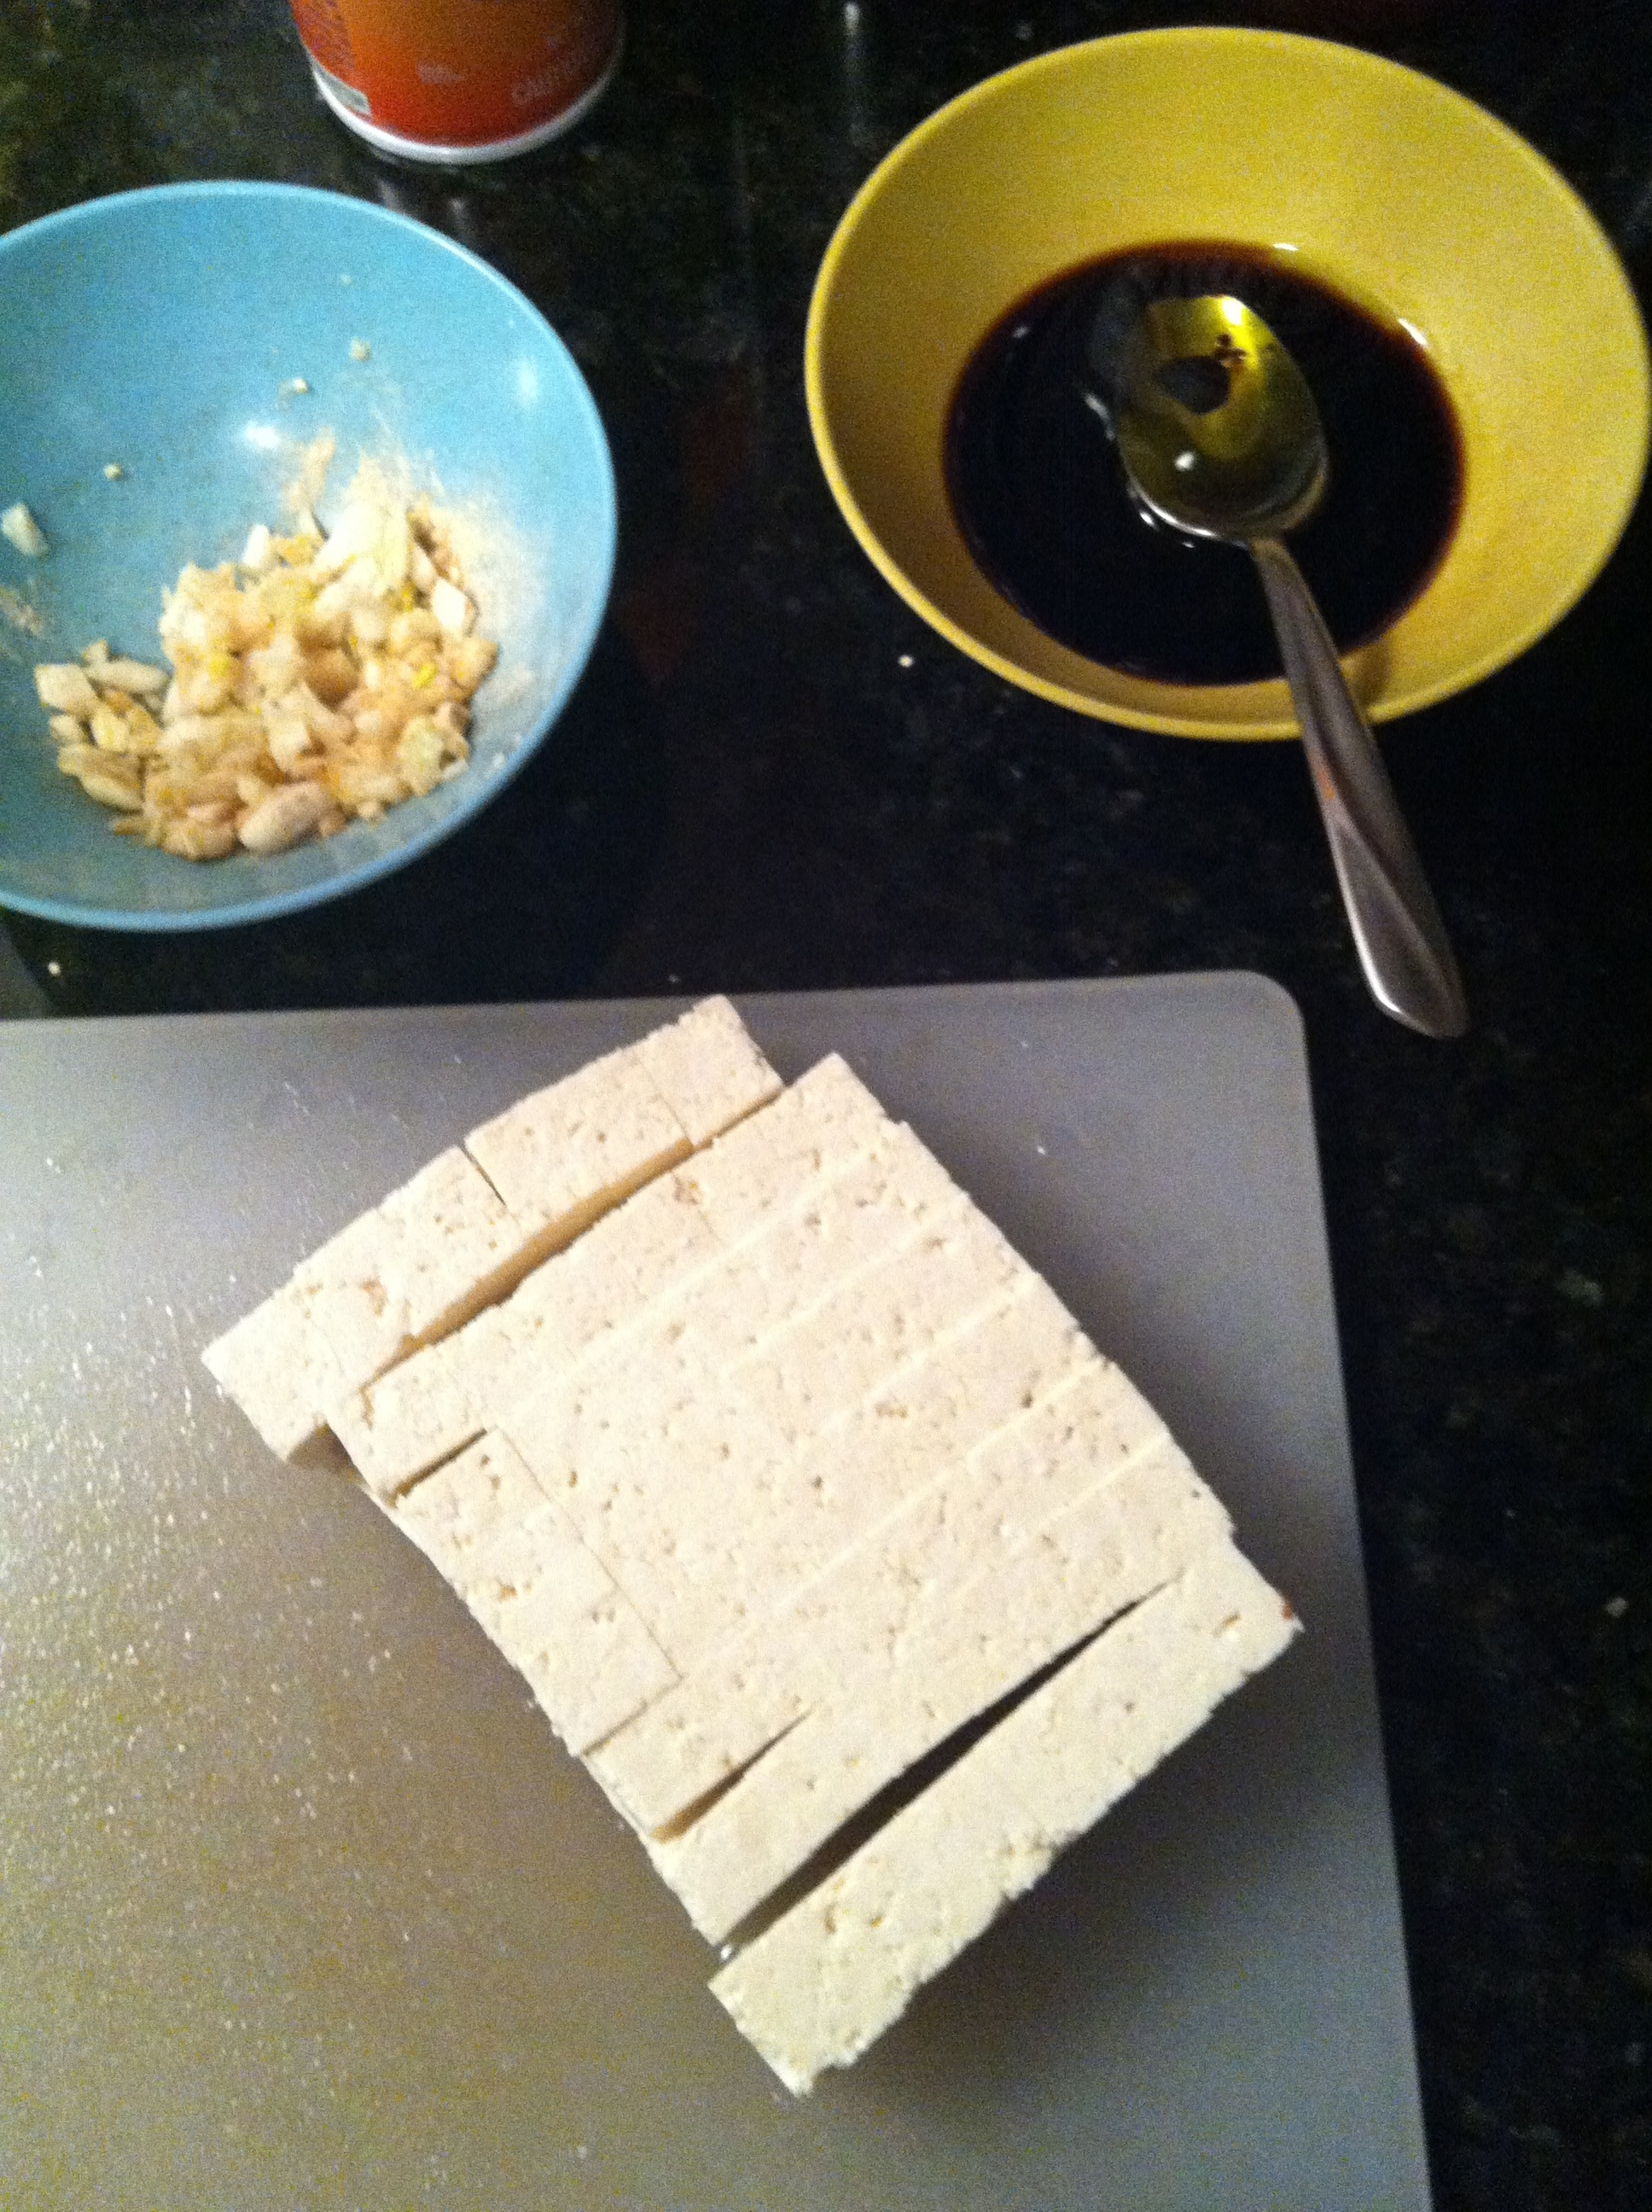 Prepping ingredients and tofu